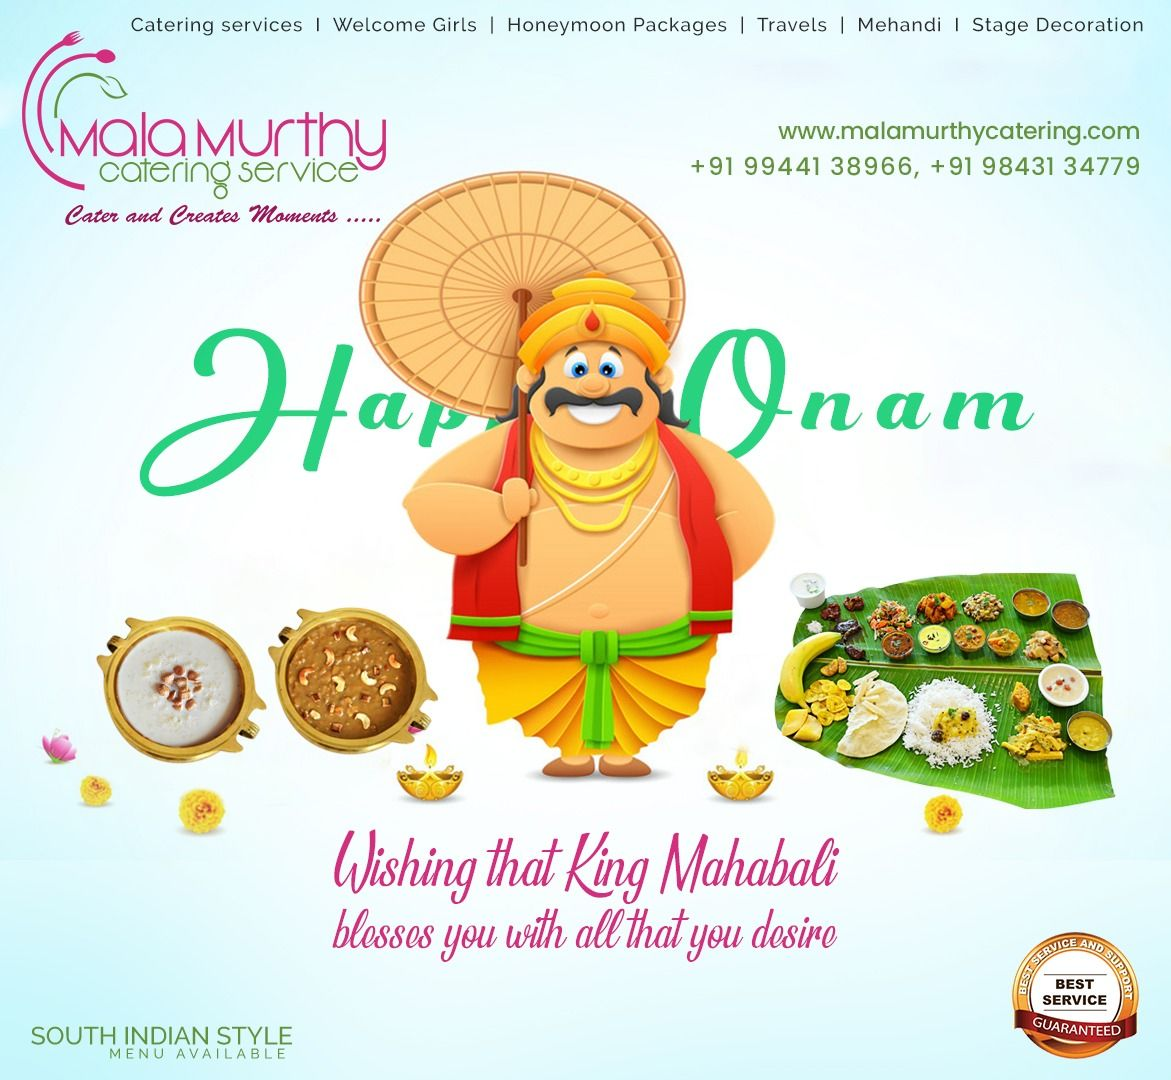 Malamurthy catering best kerala food catering service in